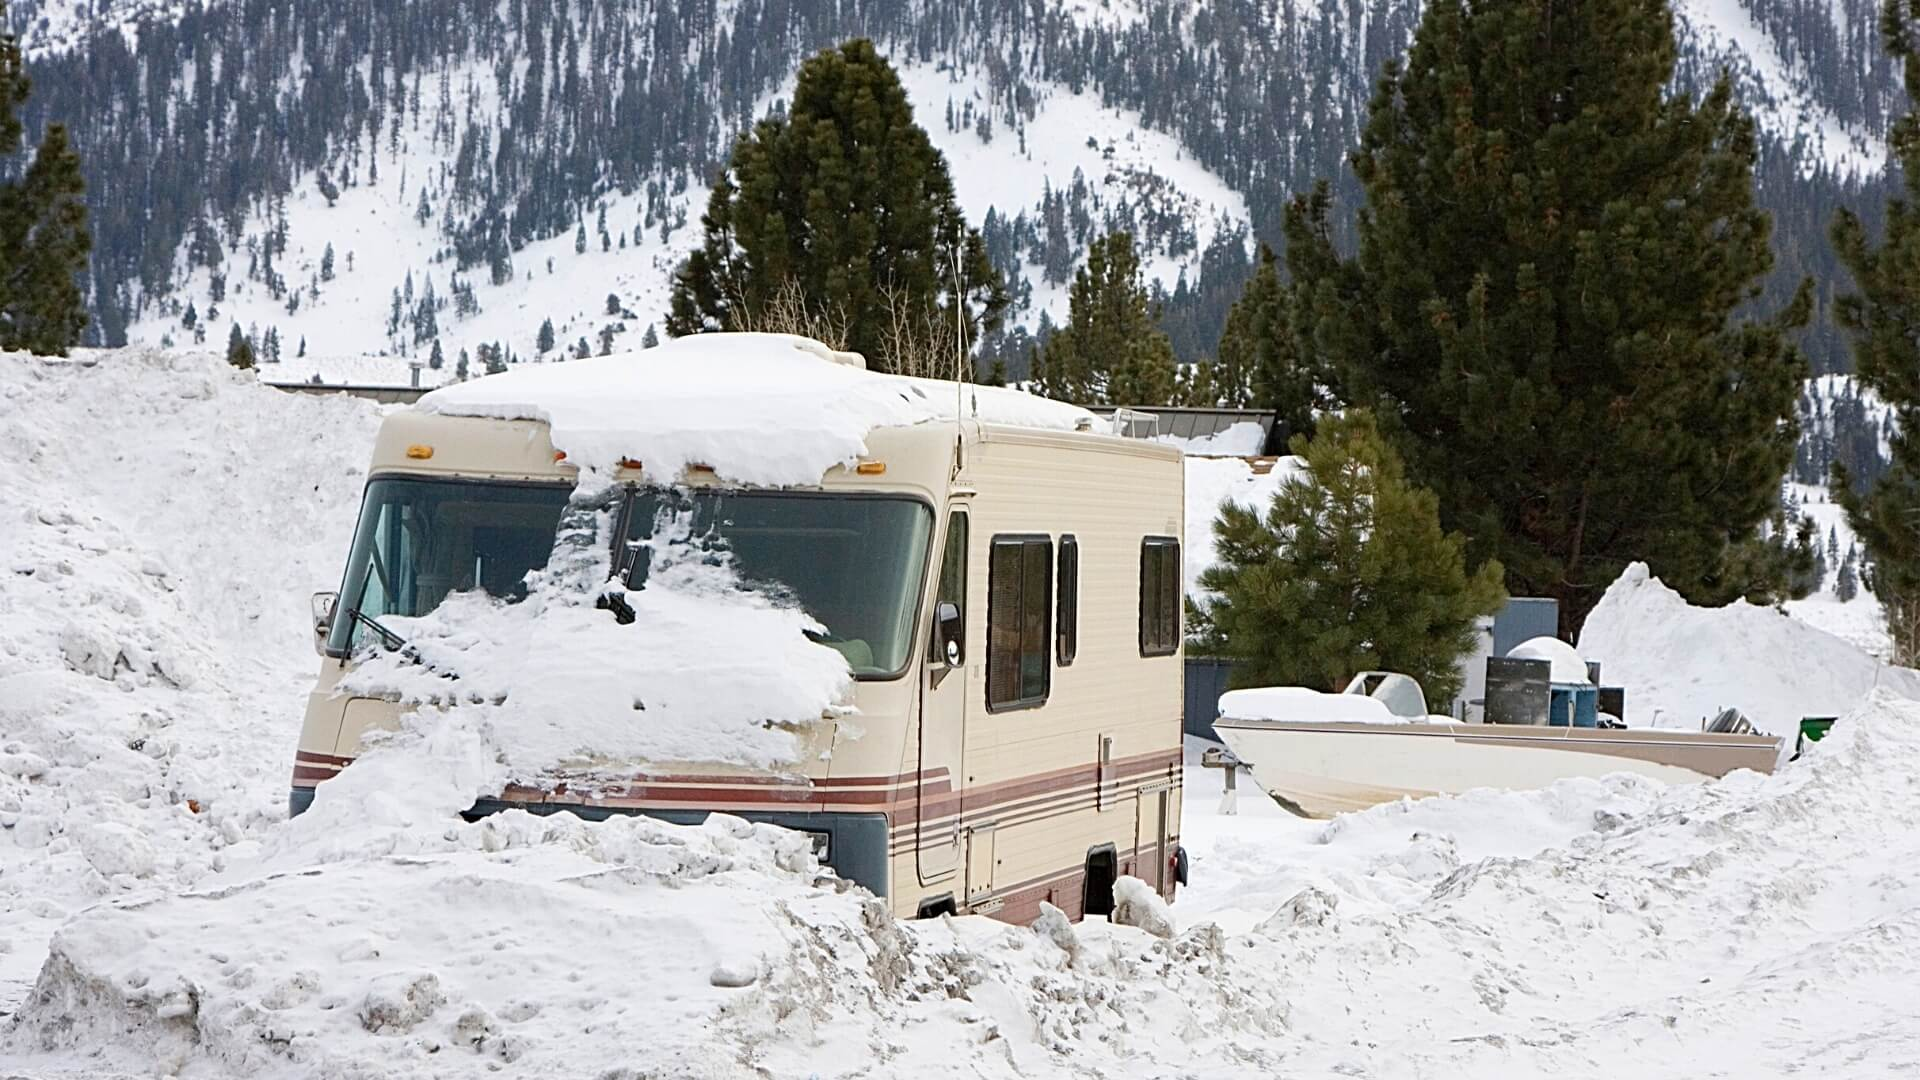 RV stuck in the snow